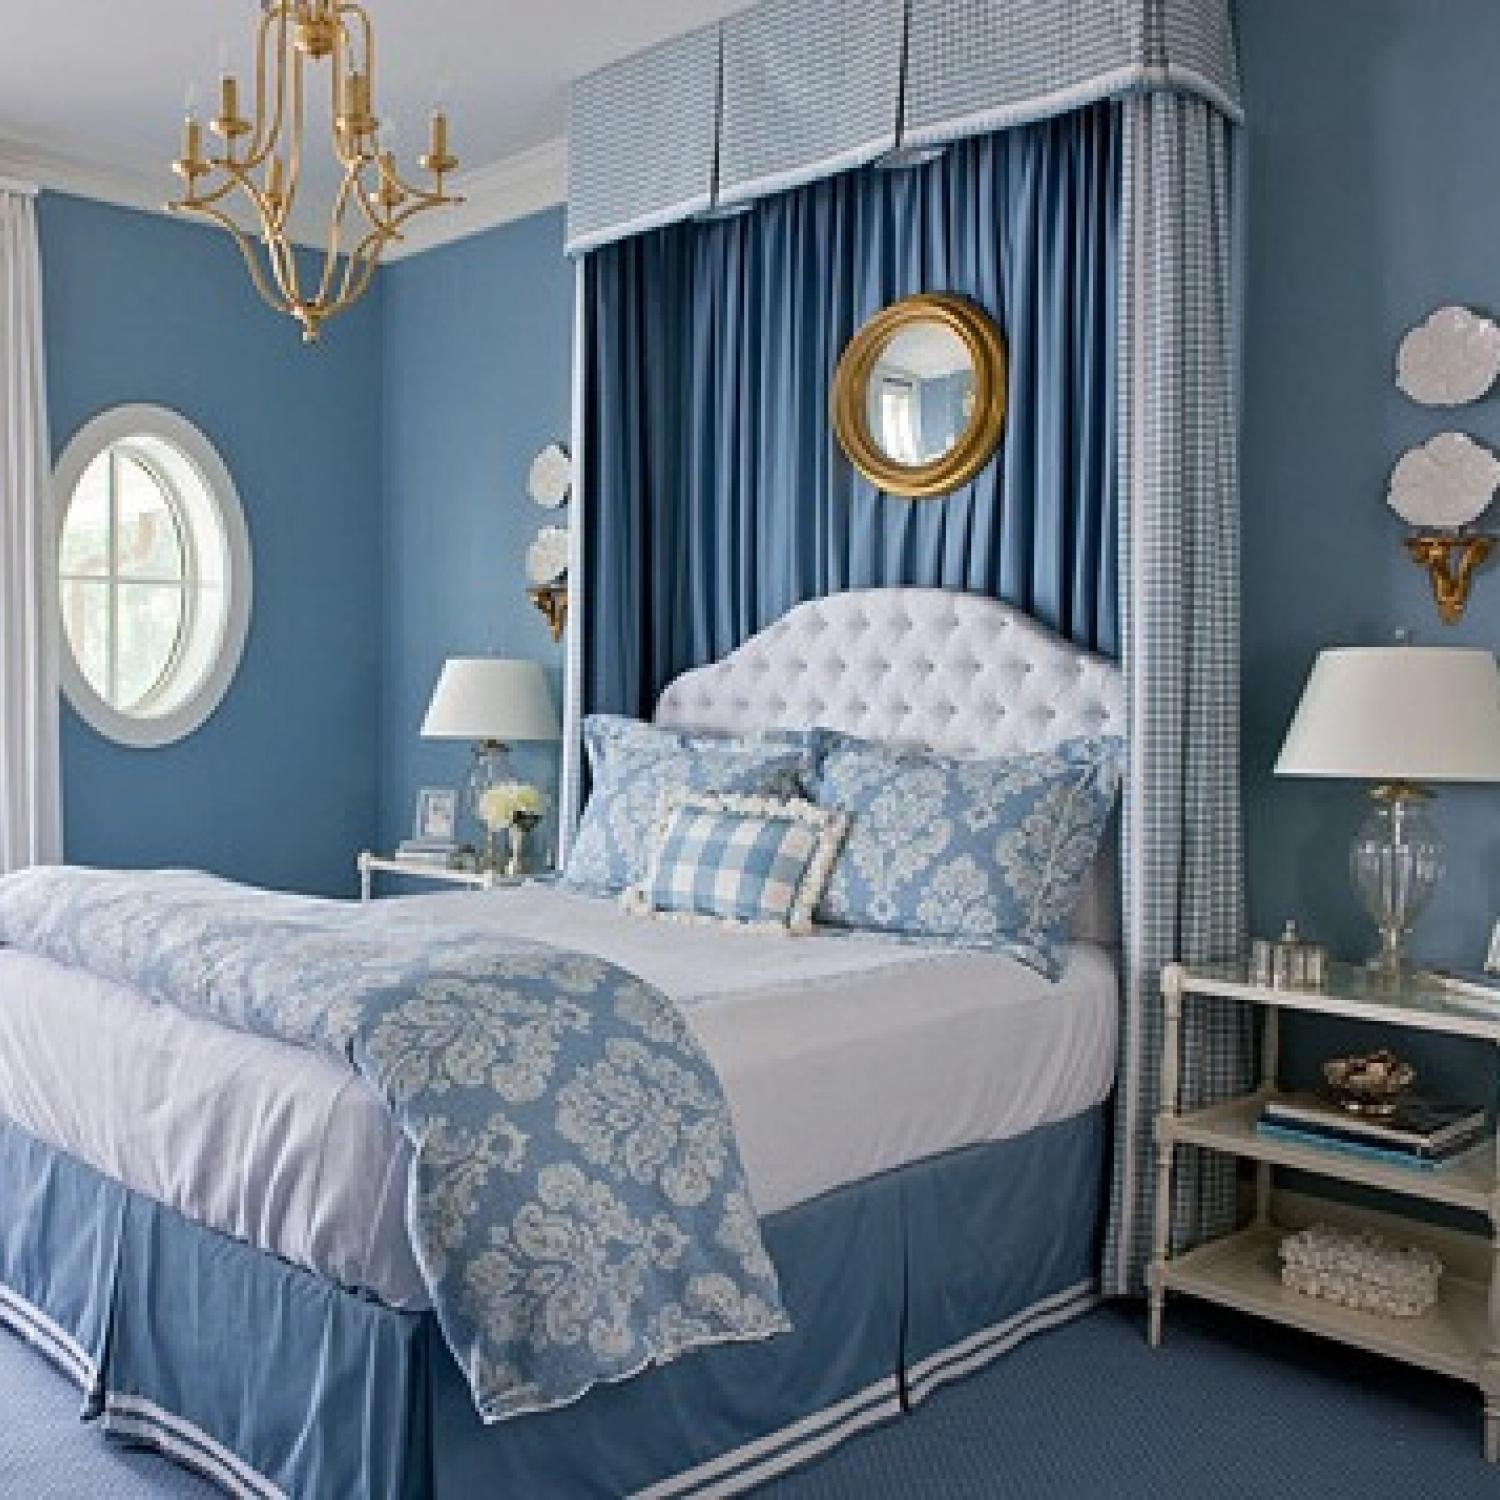 Traditional Blue Bedroom Ideas. Traditional Blue Bedroom Ideas Home Magazine